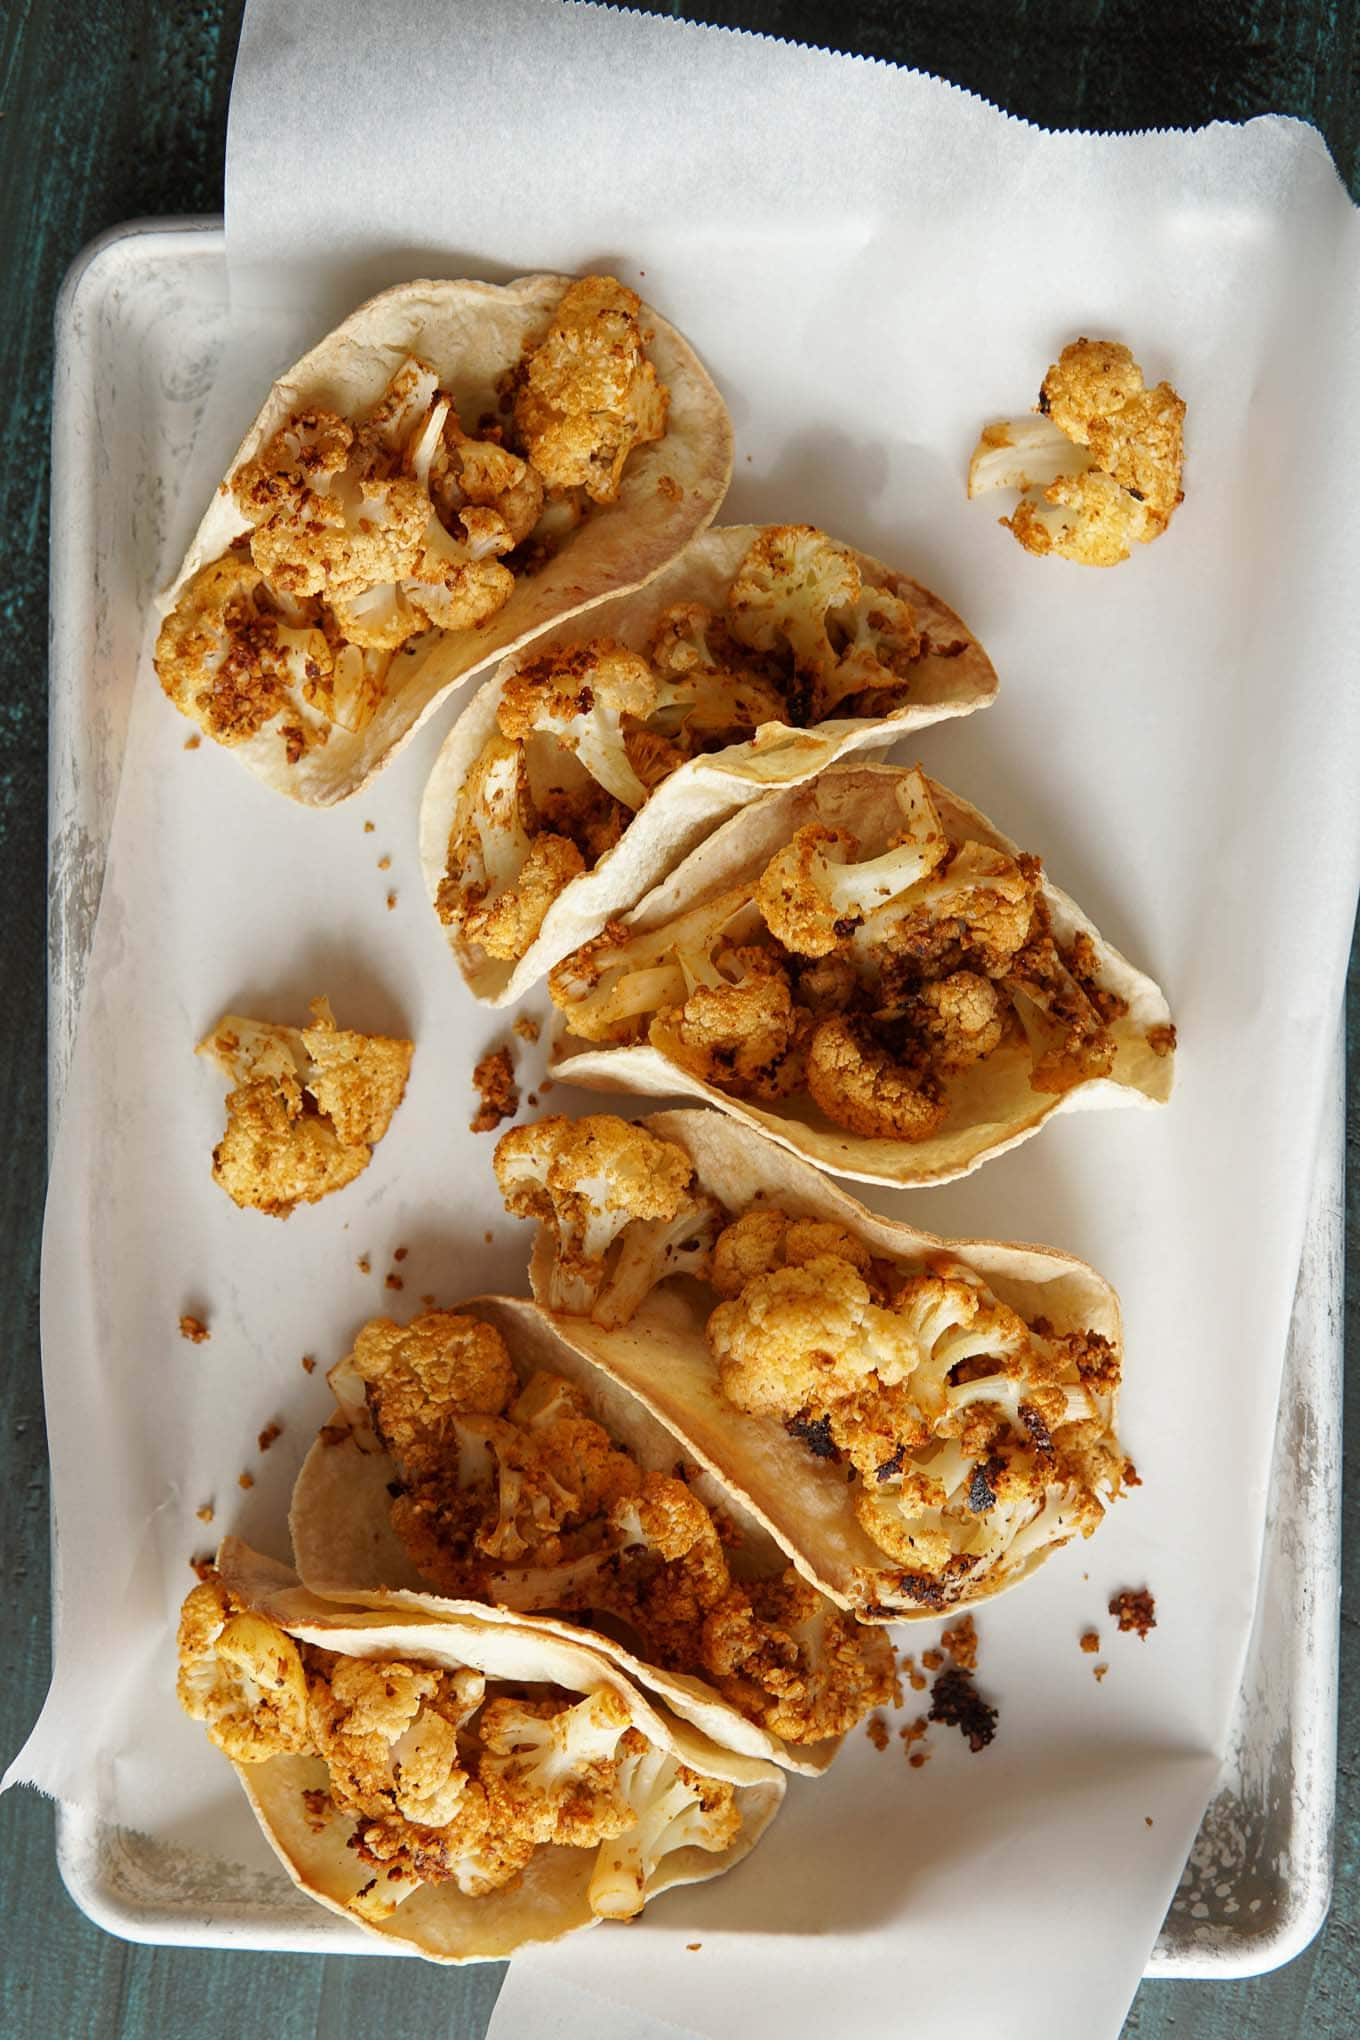 Chipotle Cauliflower Tacos without toppings on baking sheet